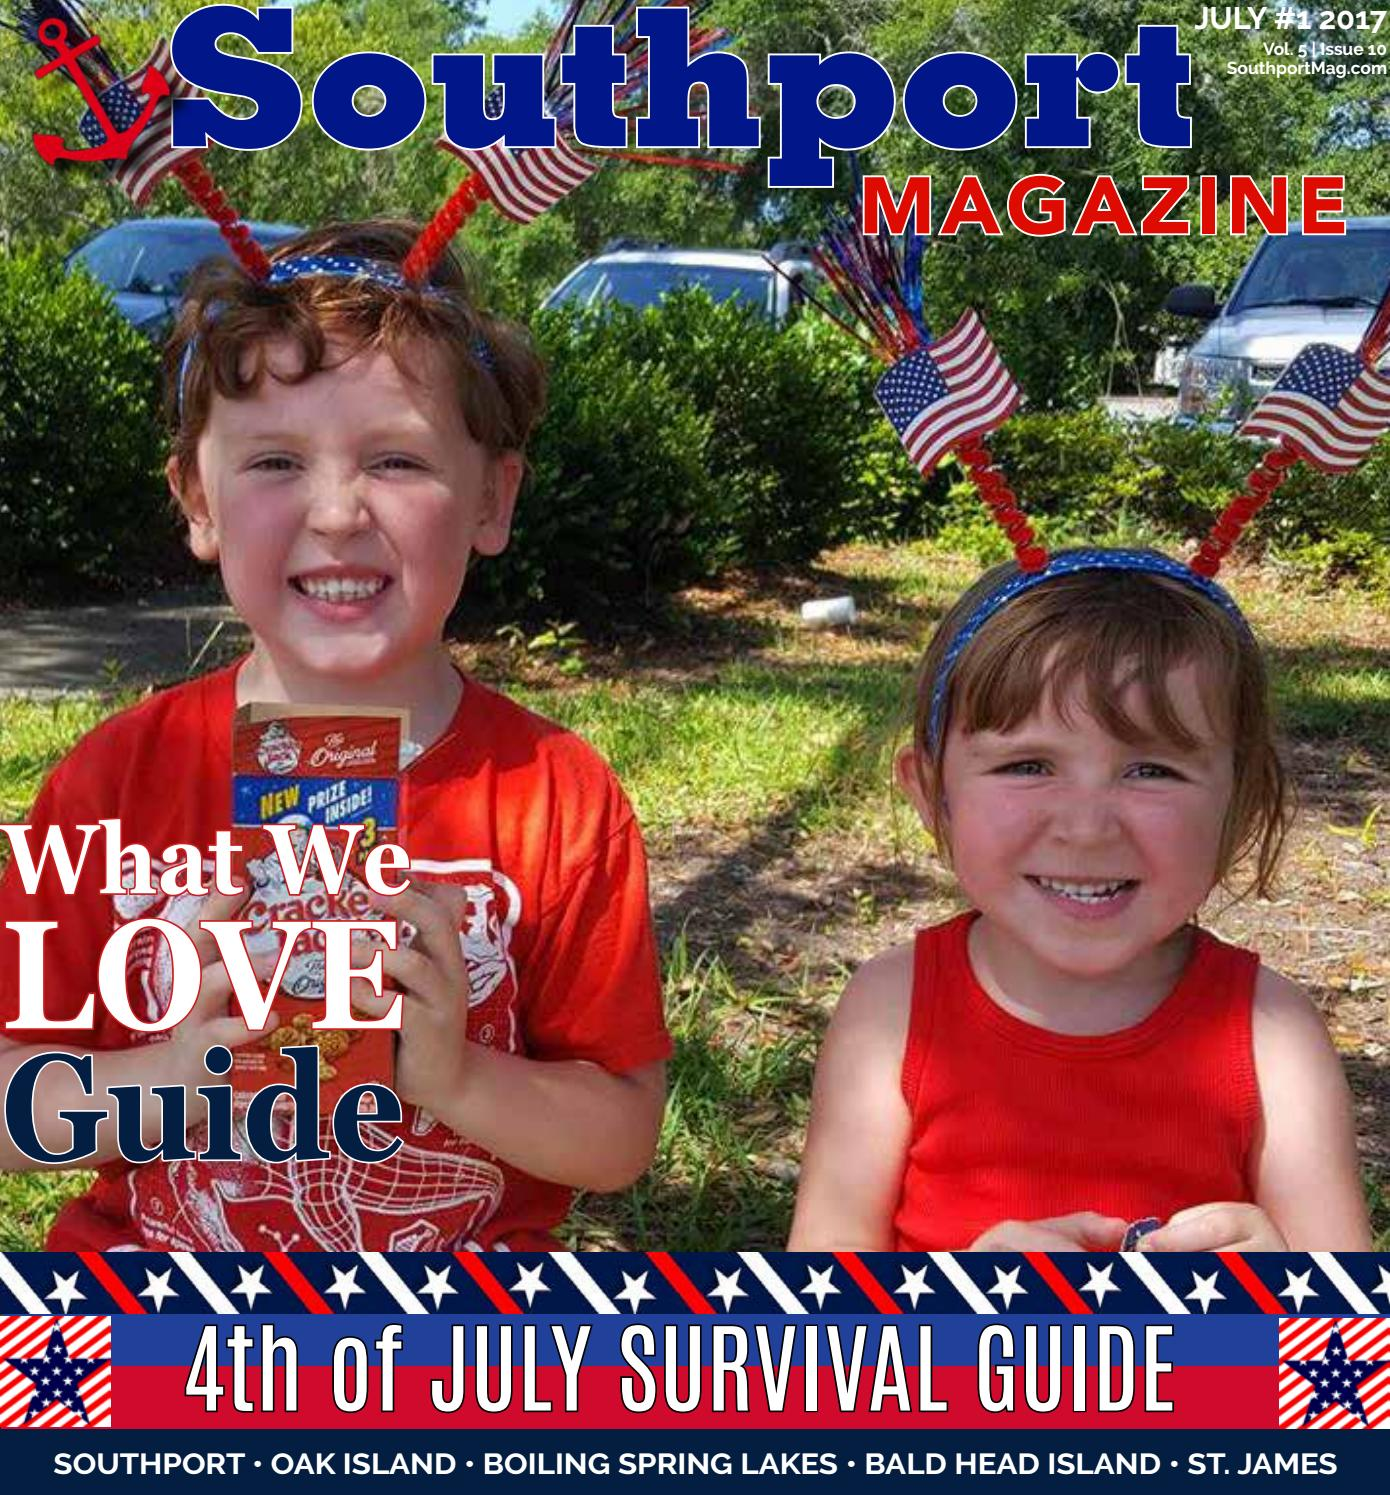 July 4th Survival Guide By Southport